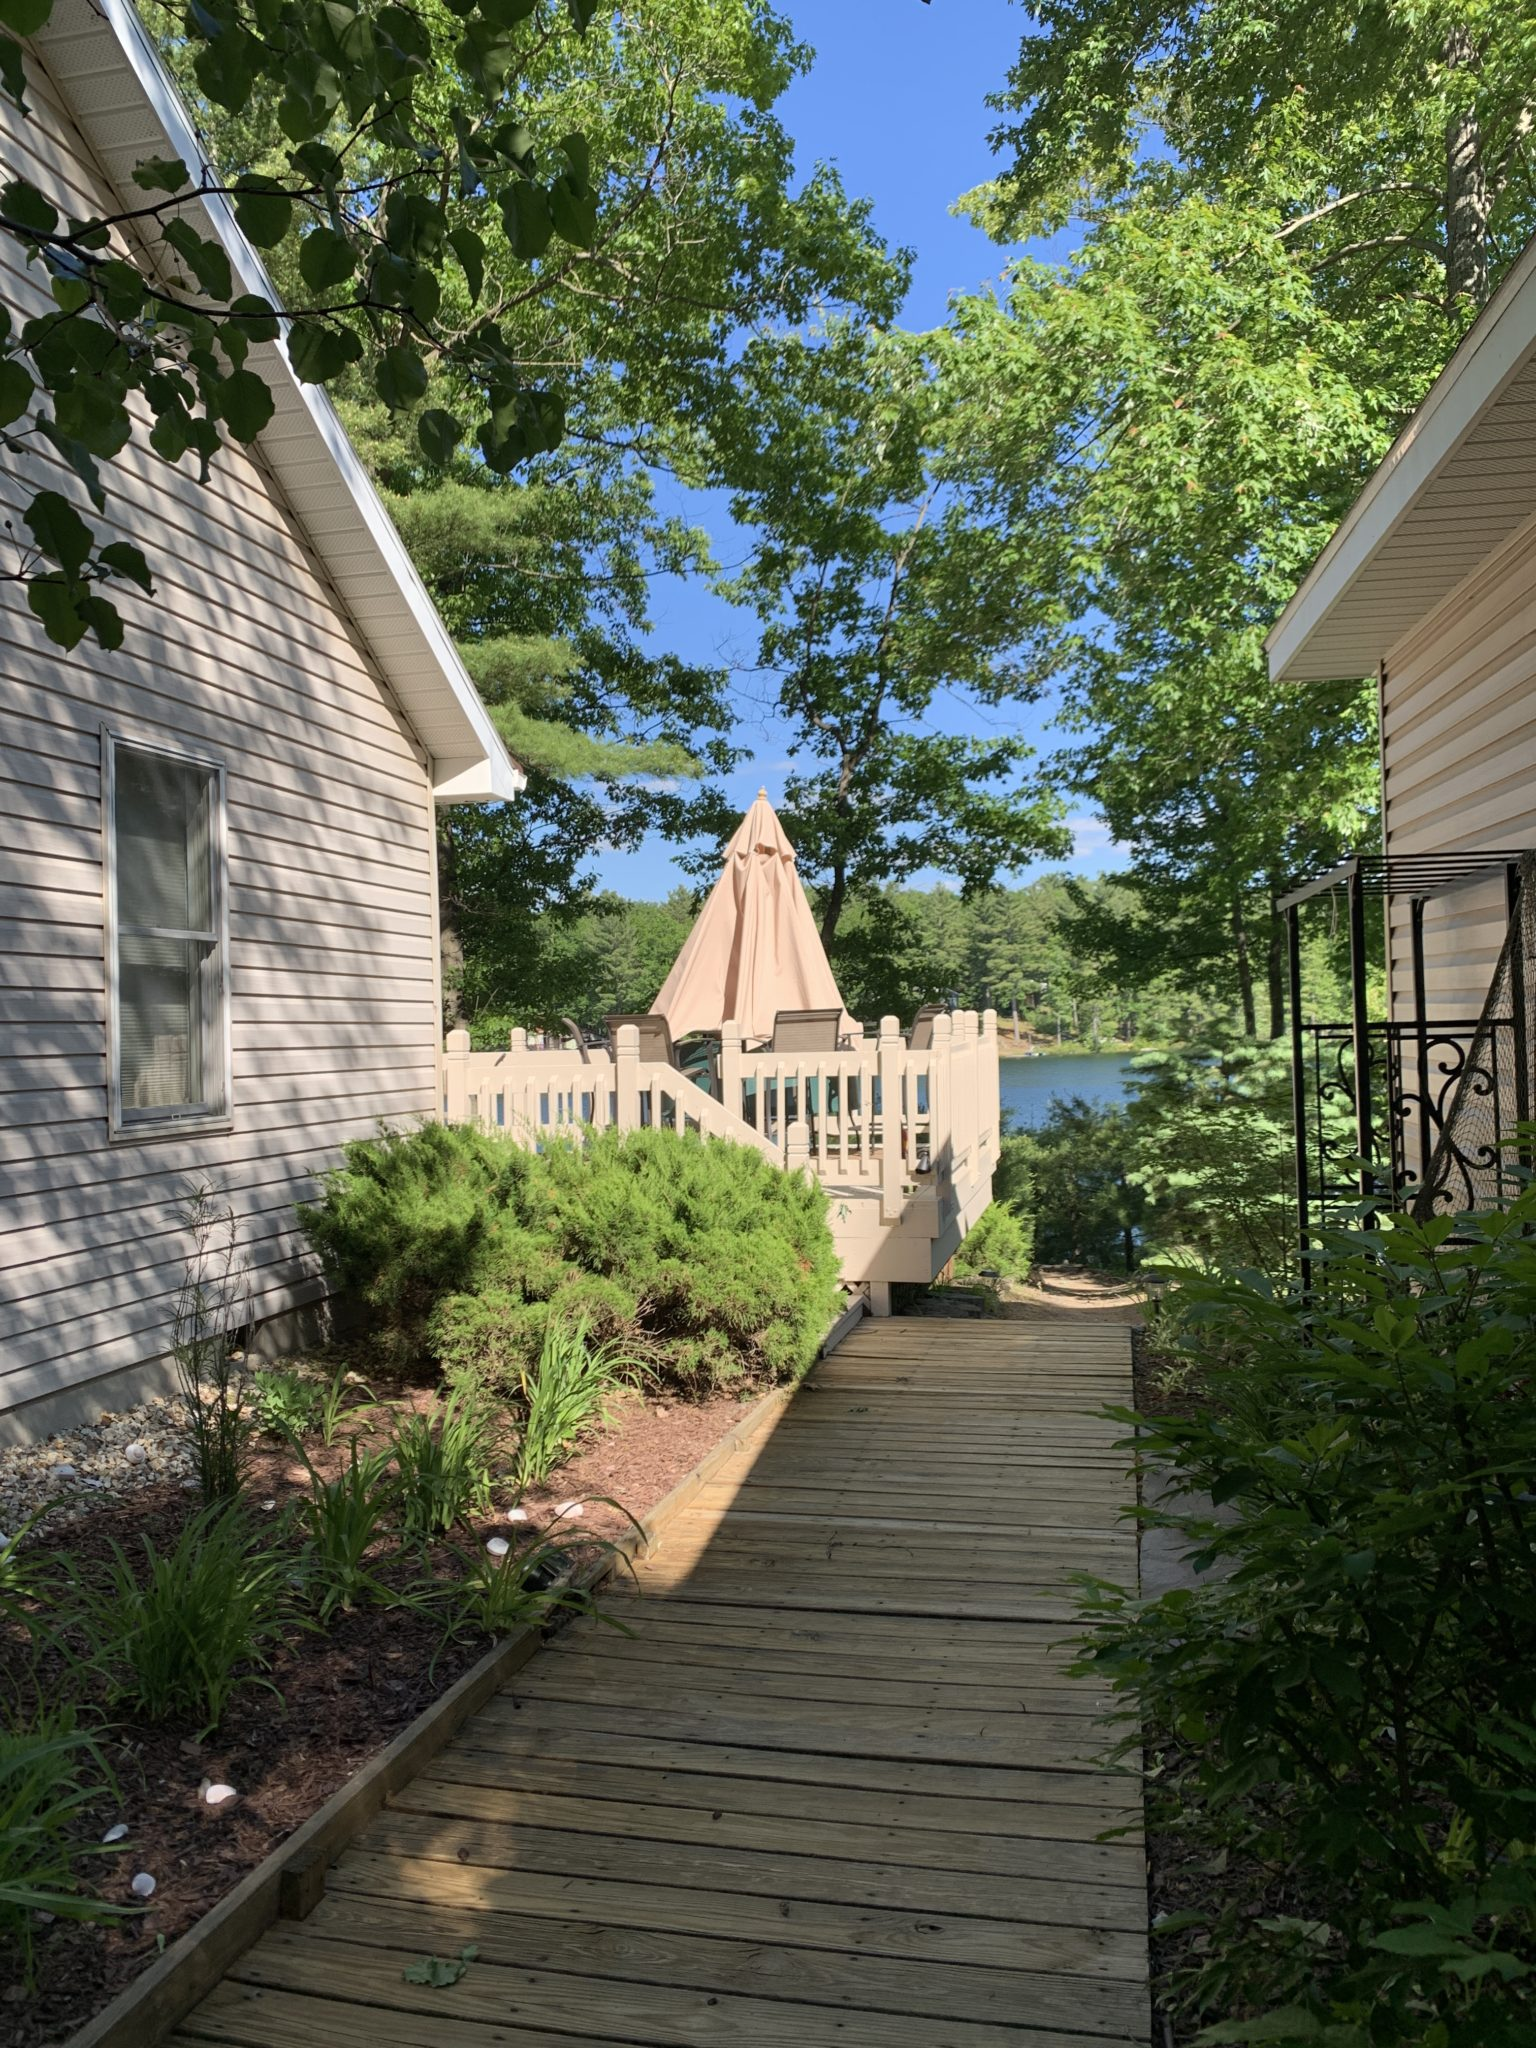 Traverse City by popular Chicago travel blog, Glass of Glam: image of a lake front cottage.